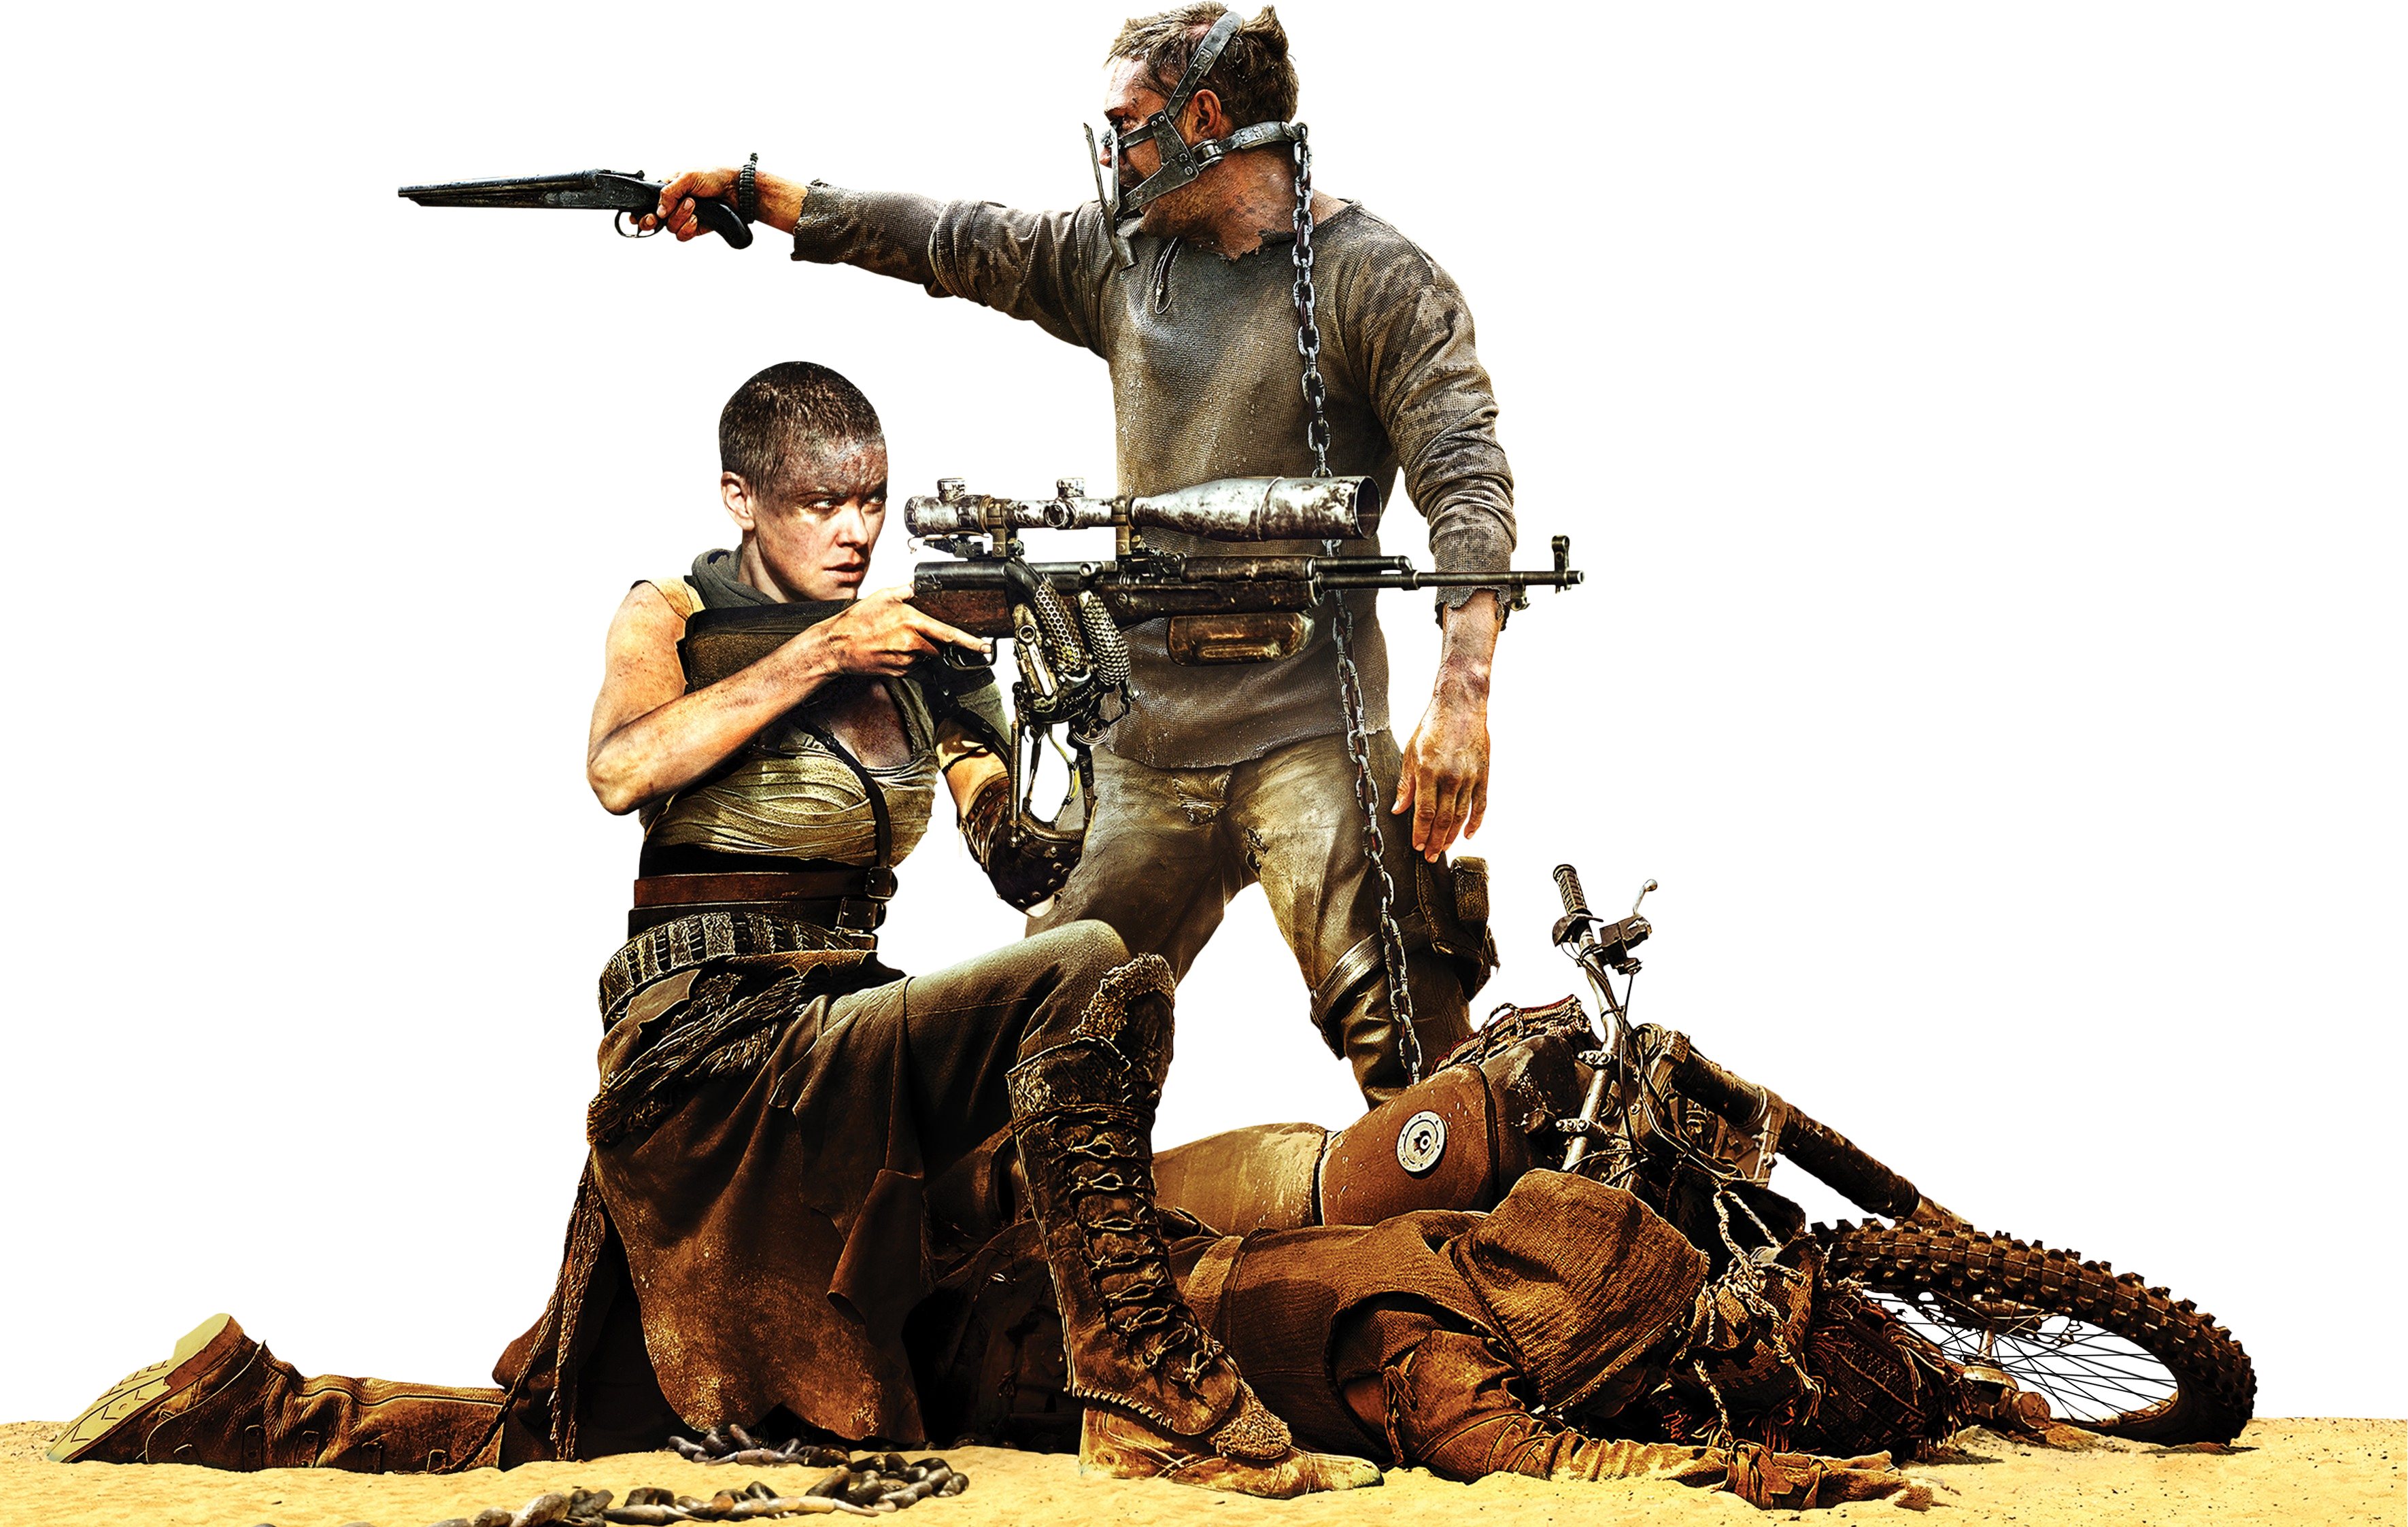 Mad Max PNG - 45443